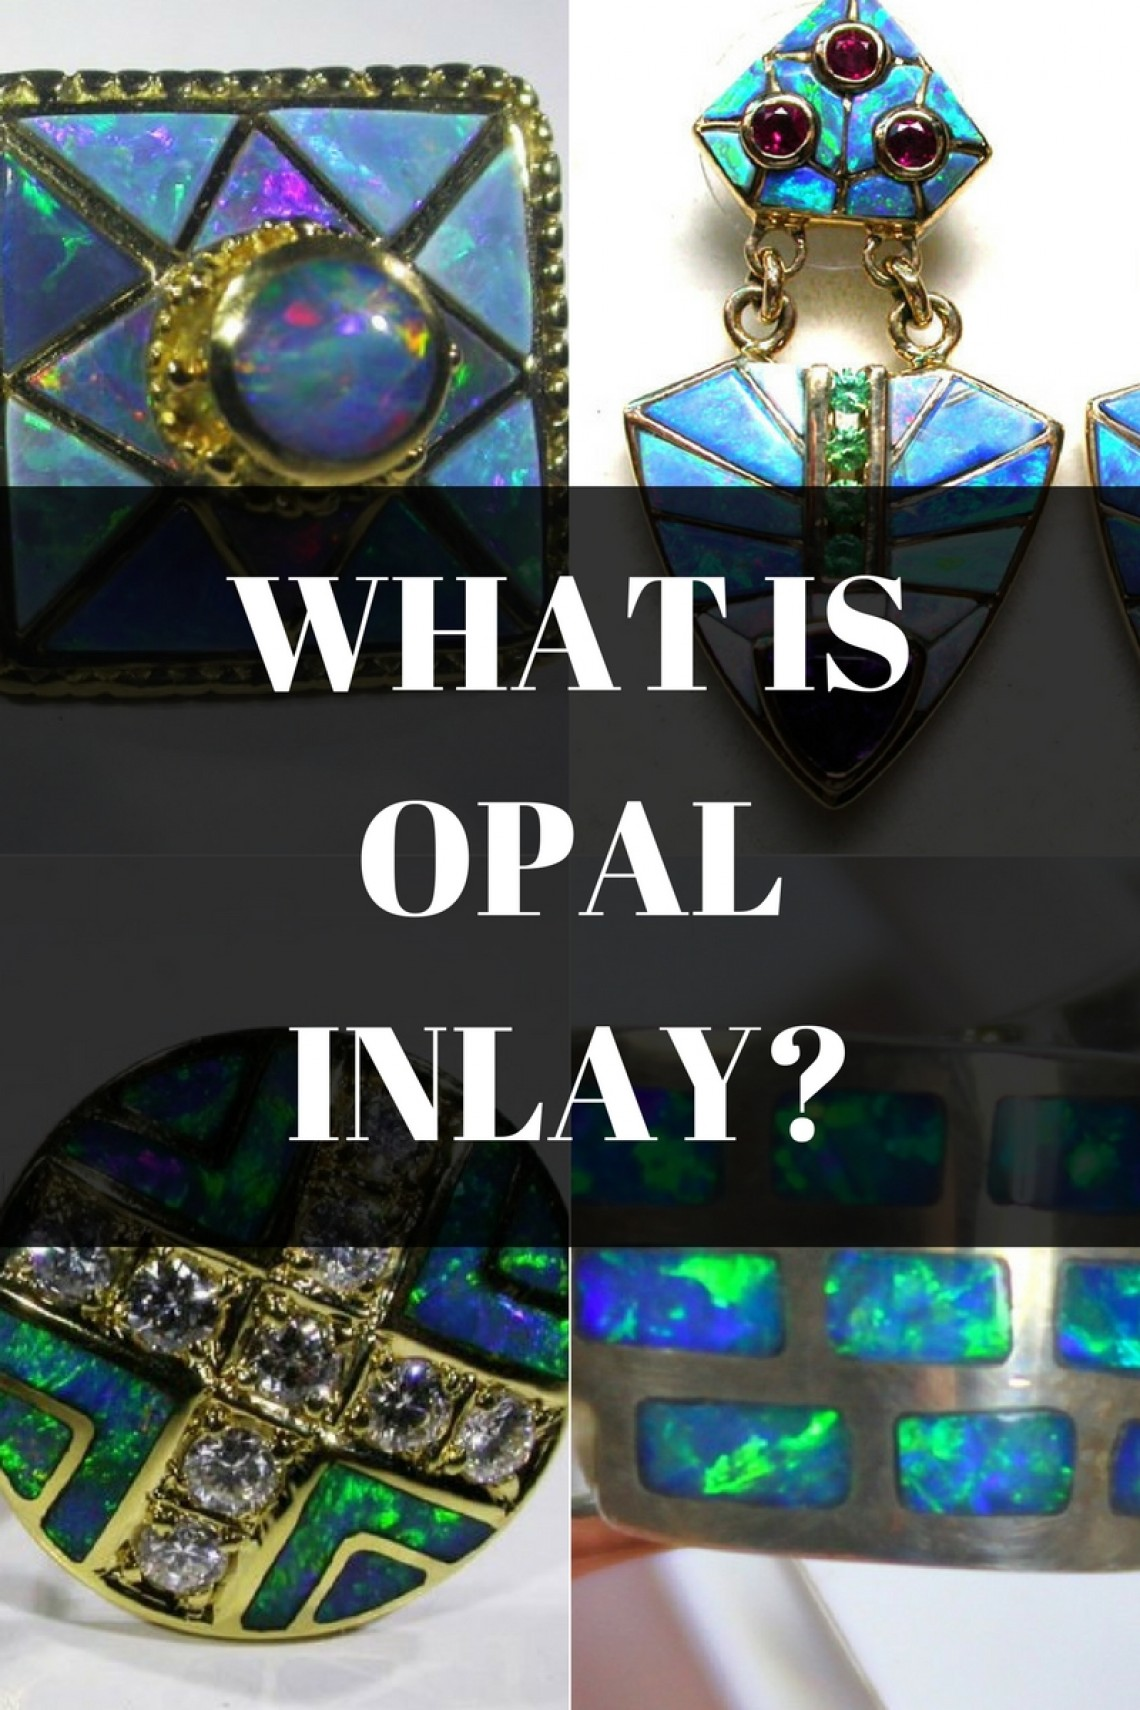 what is opal inlay